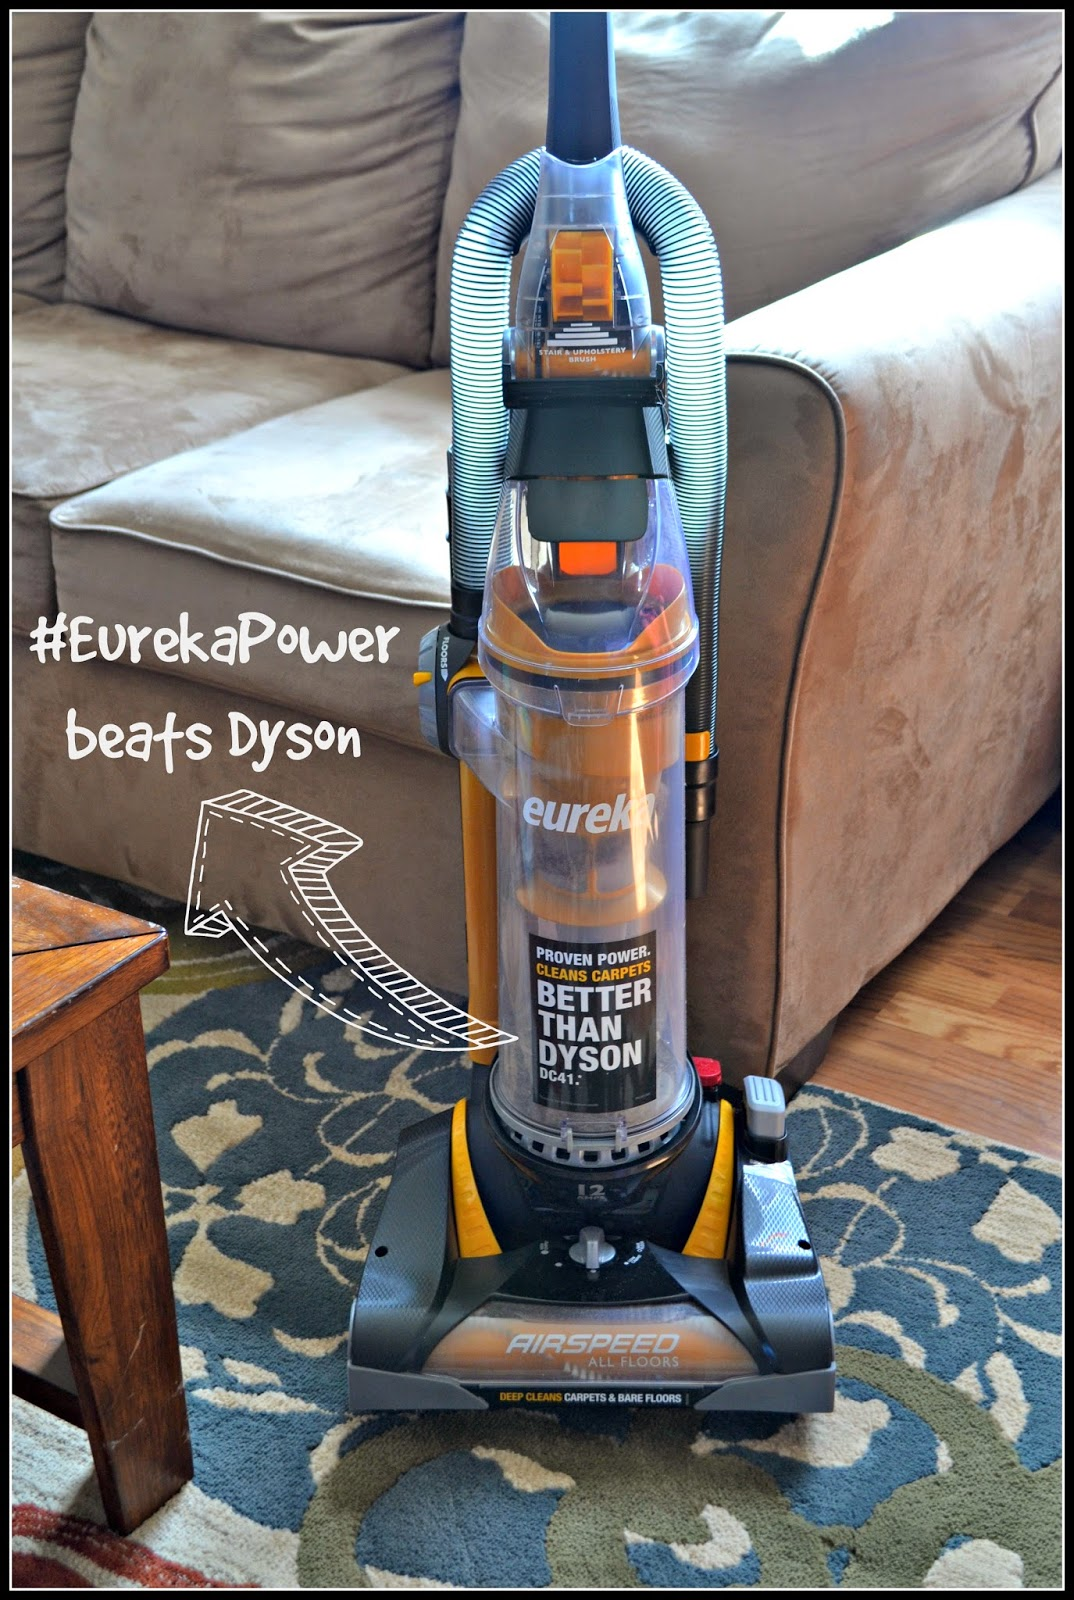 Upgrading to Eureka AirSpeed All Floors vacuum #EurekaPower